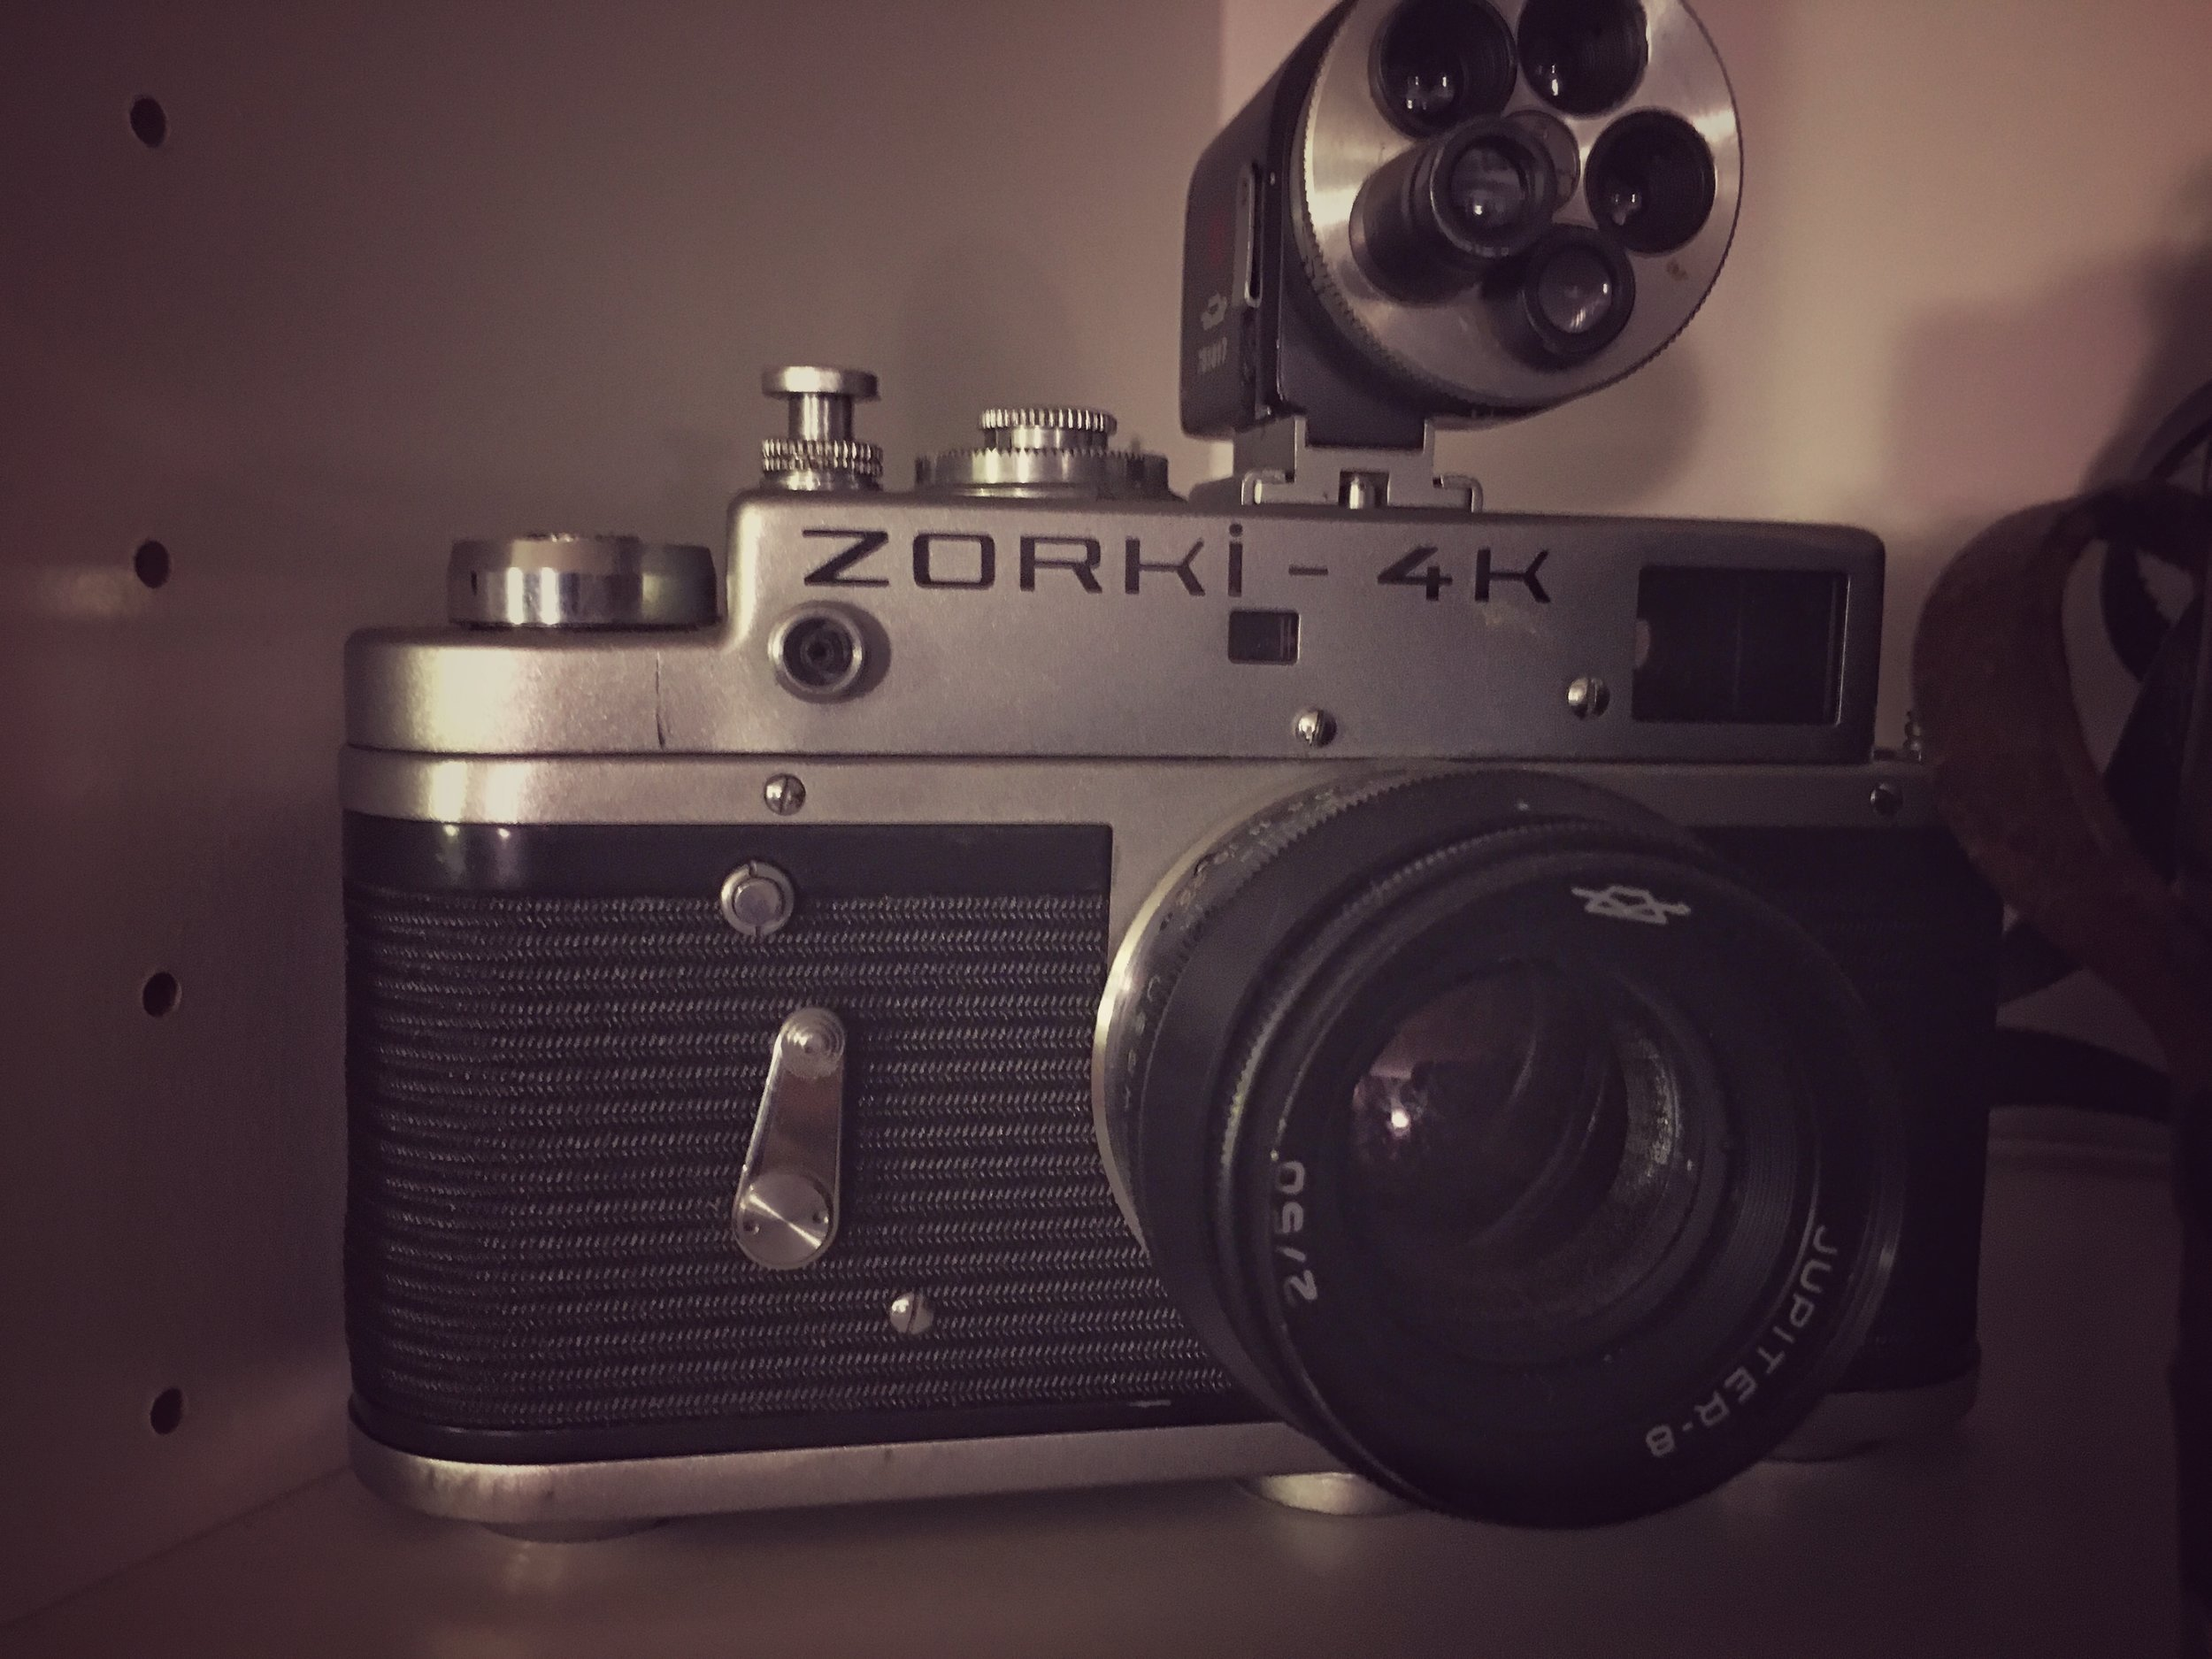 Zorki 4k, the first well designed, popular of the Soviet FED-Zorki line.